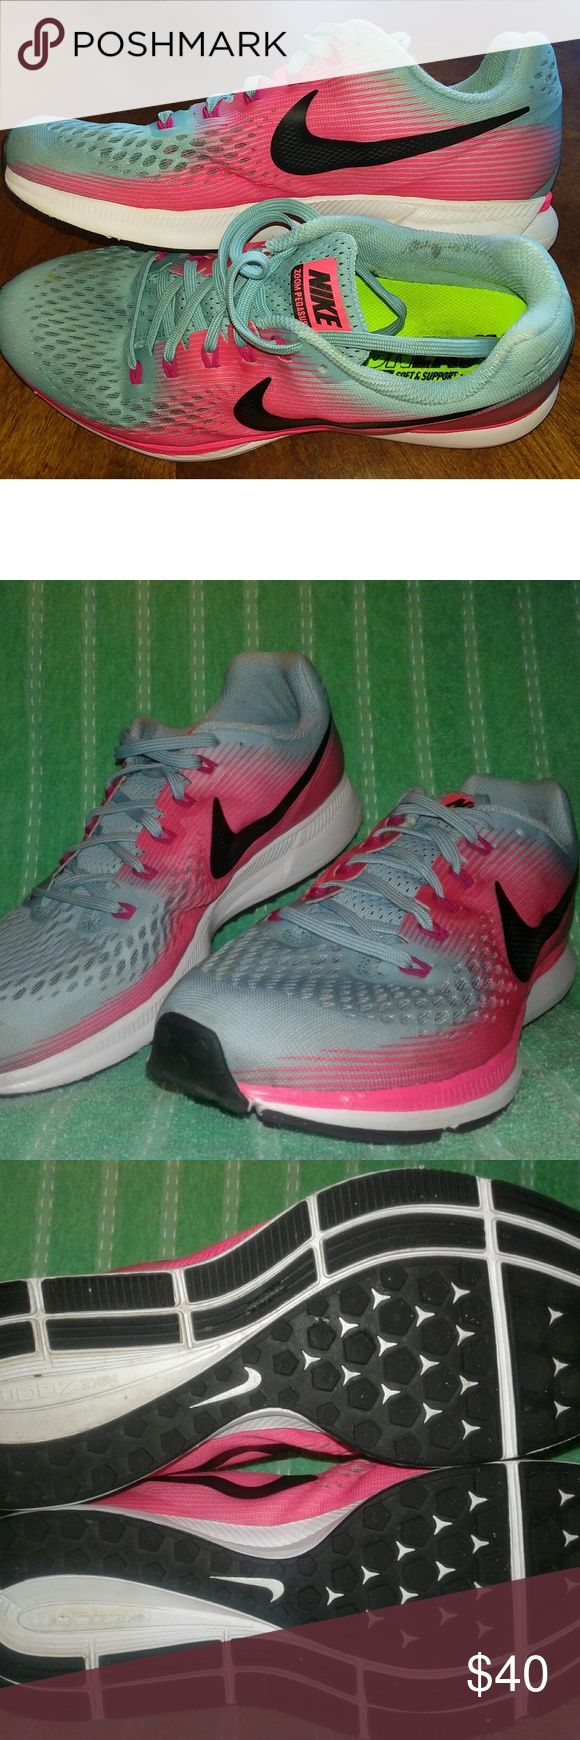 NIKE Zoom Pegasus 34 Running Shoes 11 -Pink Blue Womens Nike Air Zoom Pegasus 34 Running Shoes - Fast! Train! Marathon! 5K Womens Size 11.......................Blue, Hot Pink & Racing White Less than 20 miles on them. No excess wear at all! treads are like new. There are a few scuffs and dirt spots but they still close to new Great lightly used condition - Neutral Running Shoe. High cushioning in a responsive package. A great shoe for running, training or everyday comfort. NIKE Shoes…